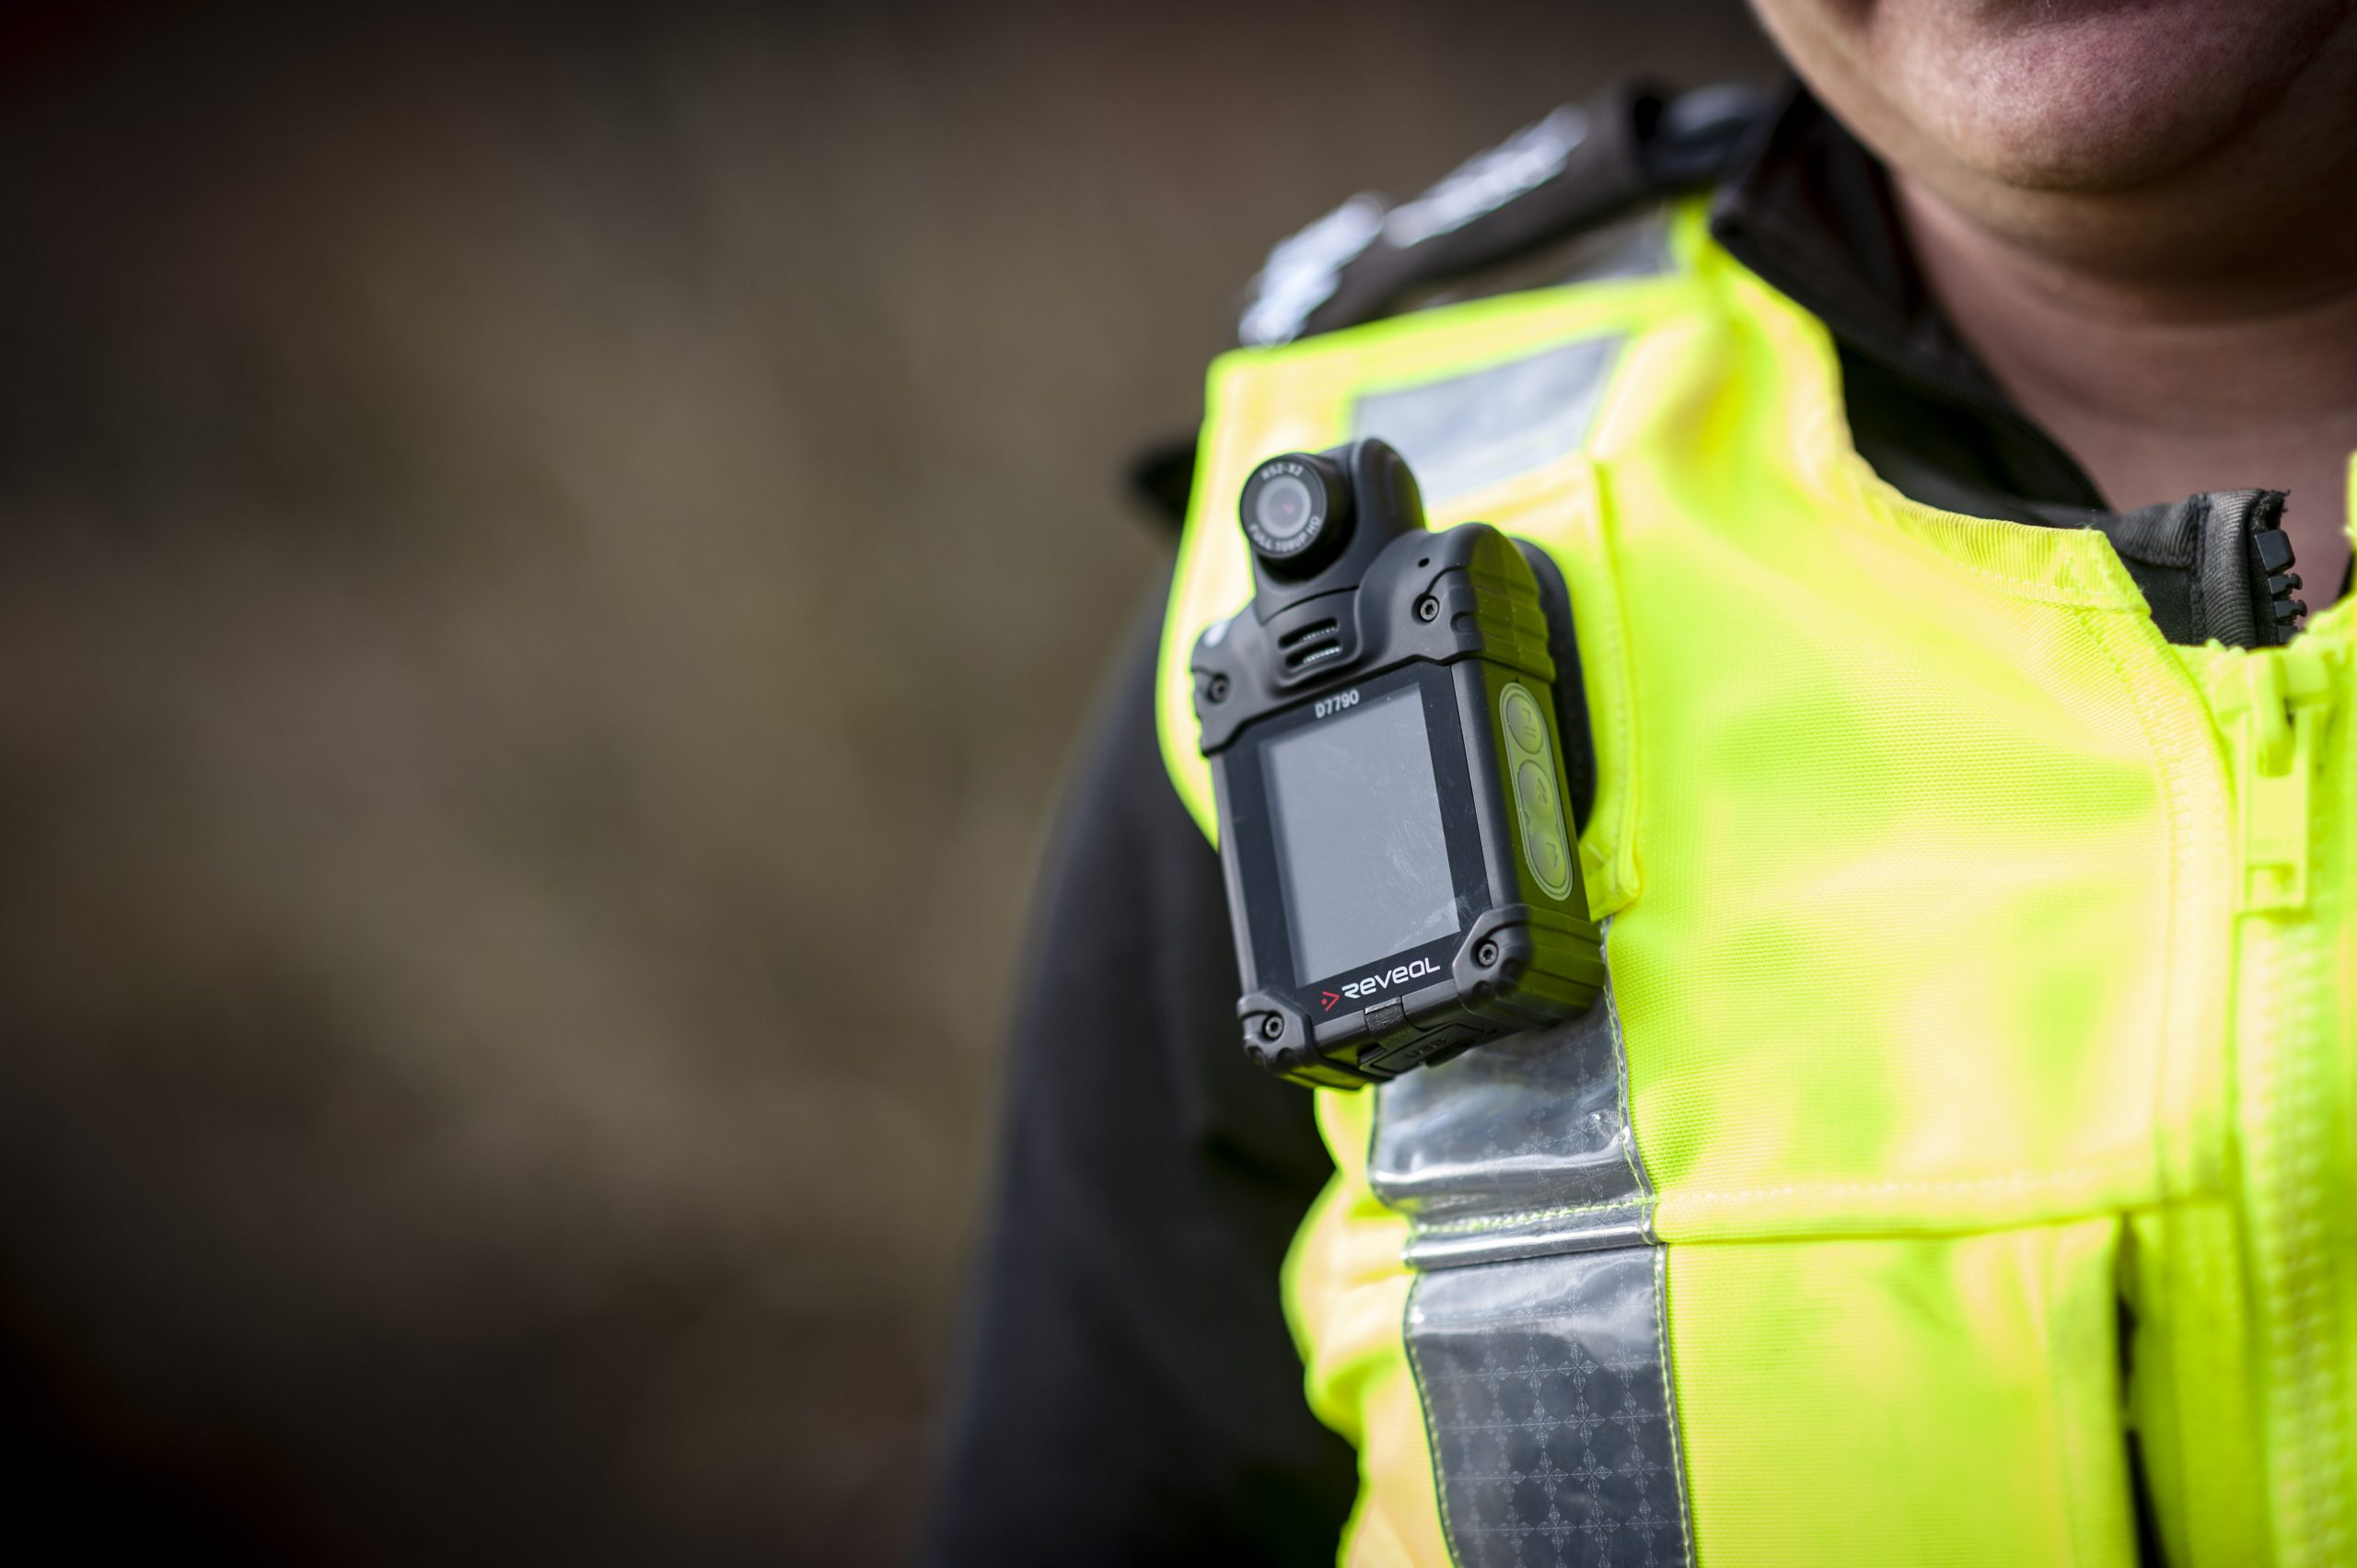 Home Secretary 'Encourages' Release Of Body-Worn Footage